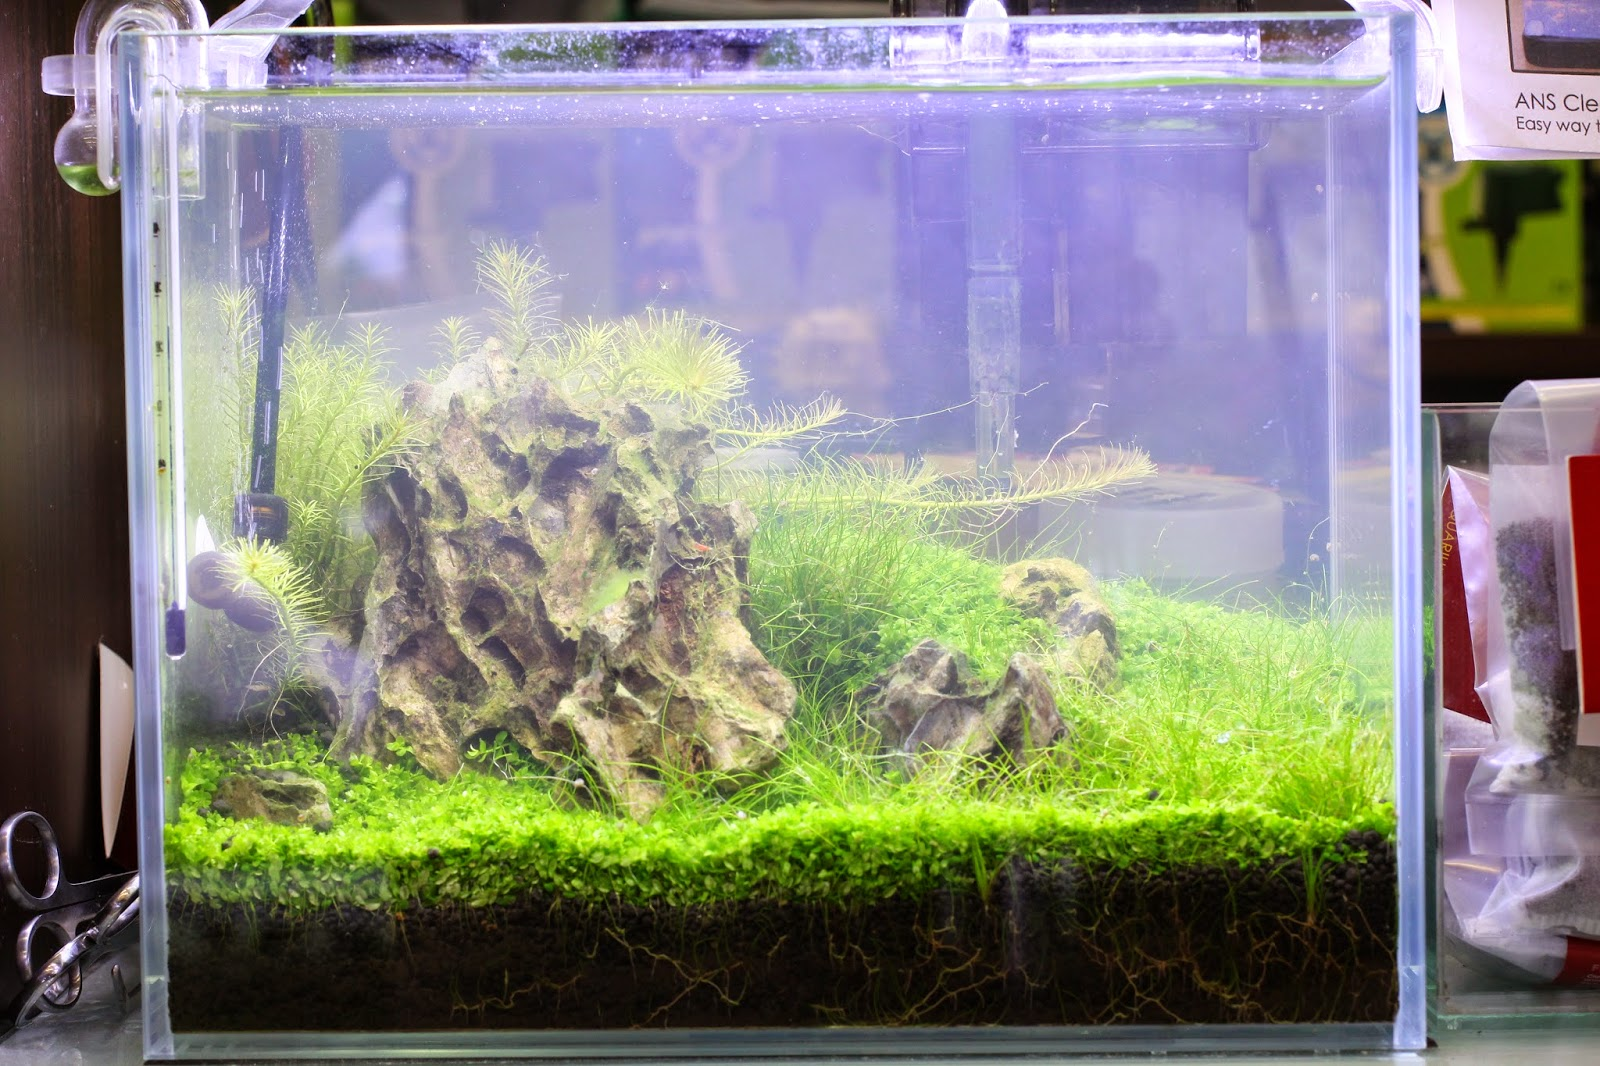 Freshwater fish no filter - We Did No Water Change Instead We Introduce Ans Clearmax To The Aquarium Ans Clearmax Is A Simple To Use Filter Media Suitable For Freshwater